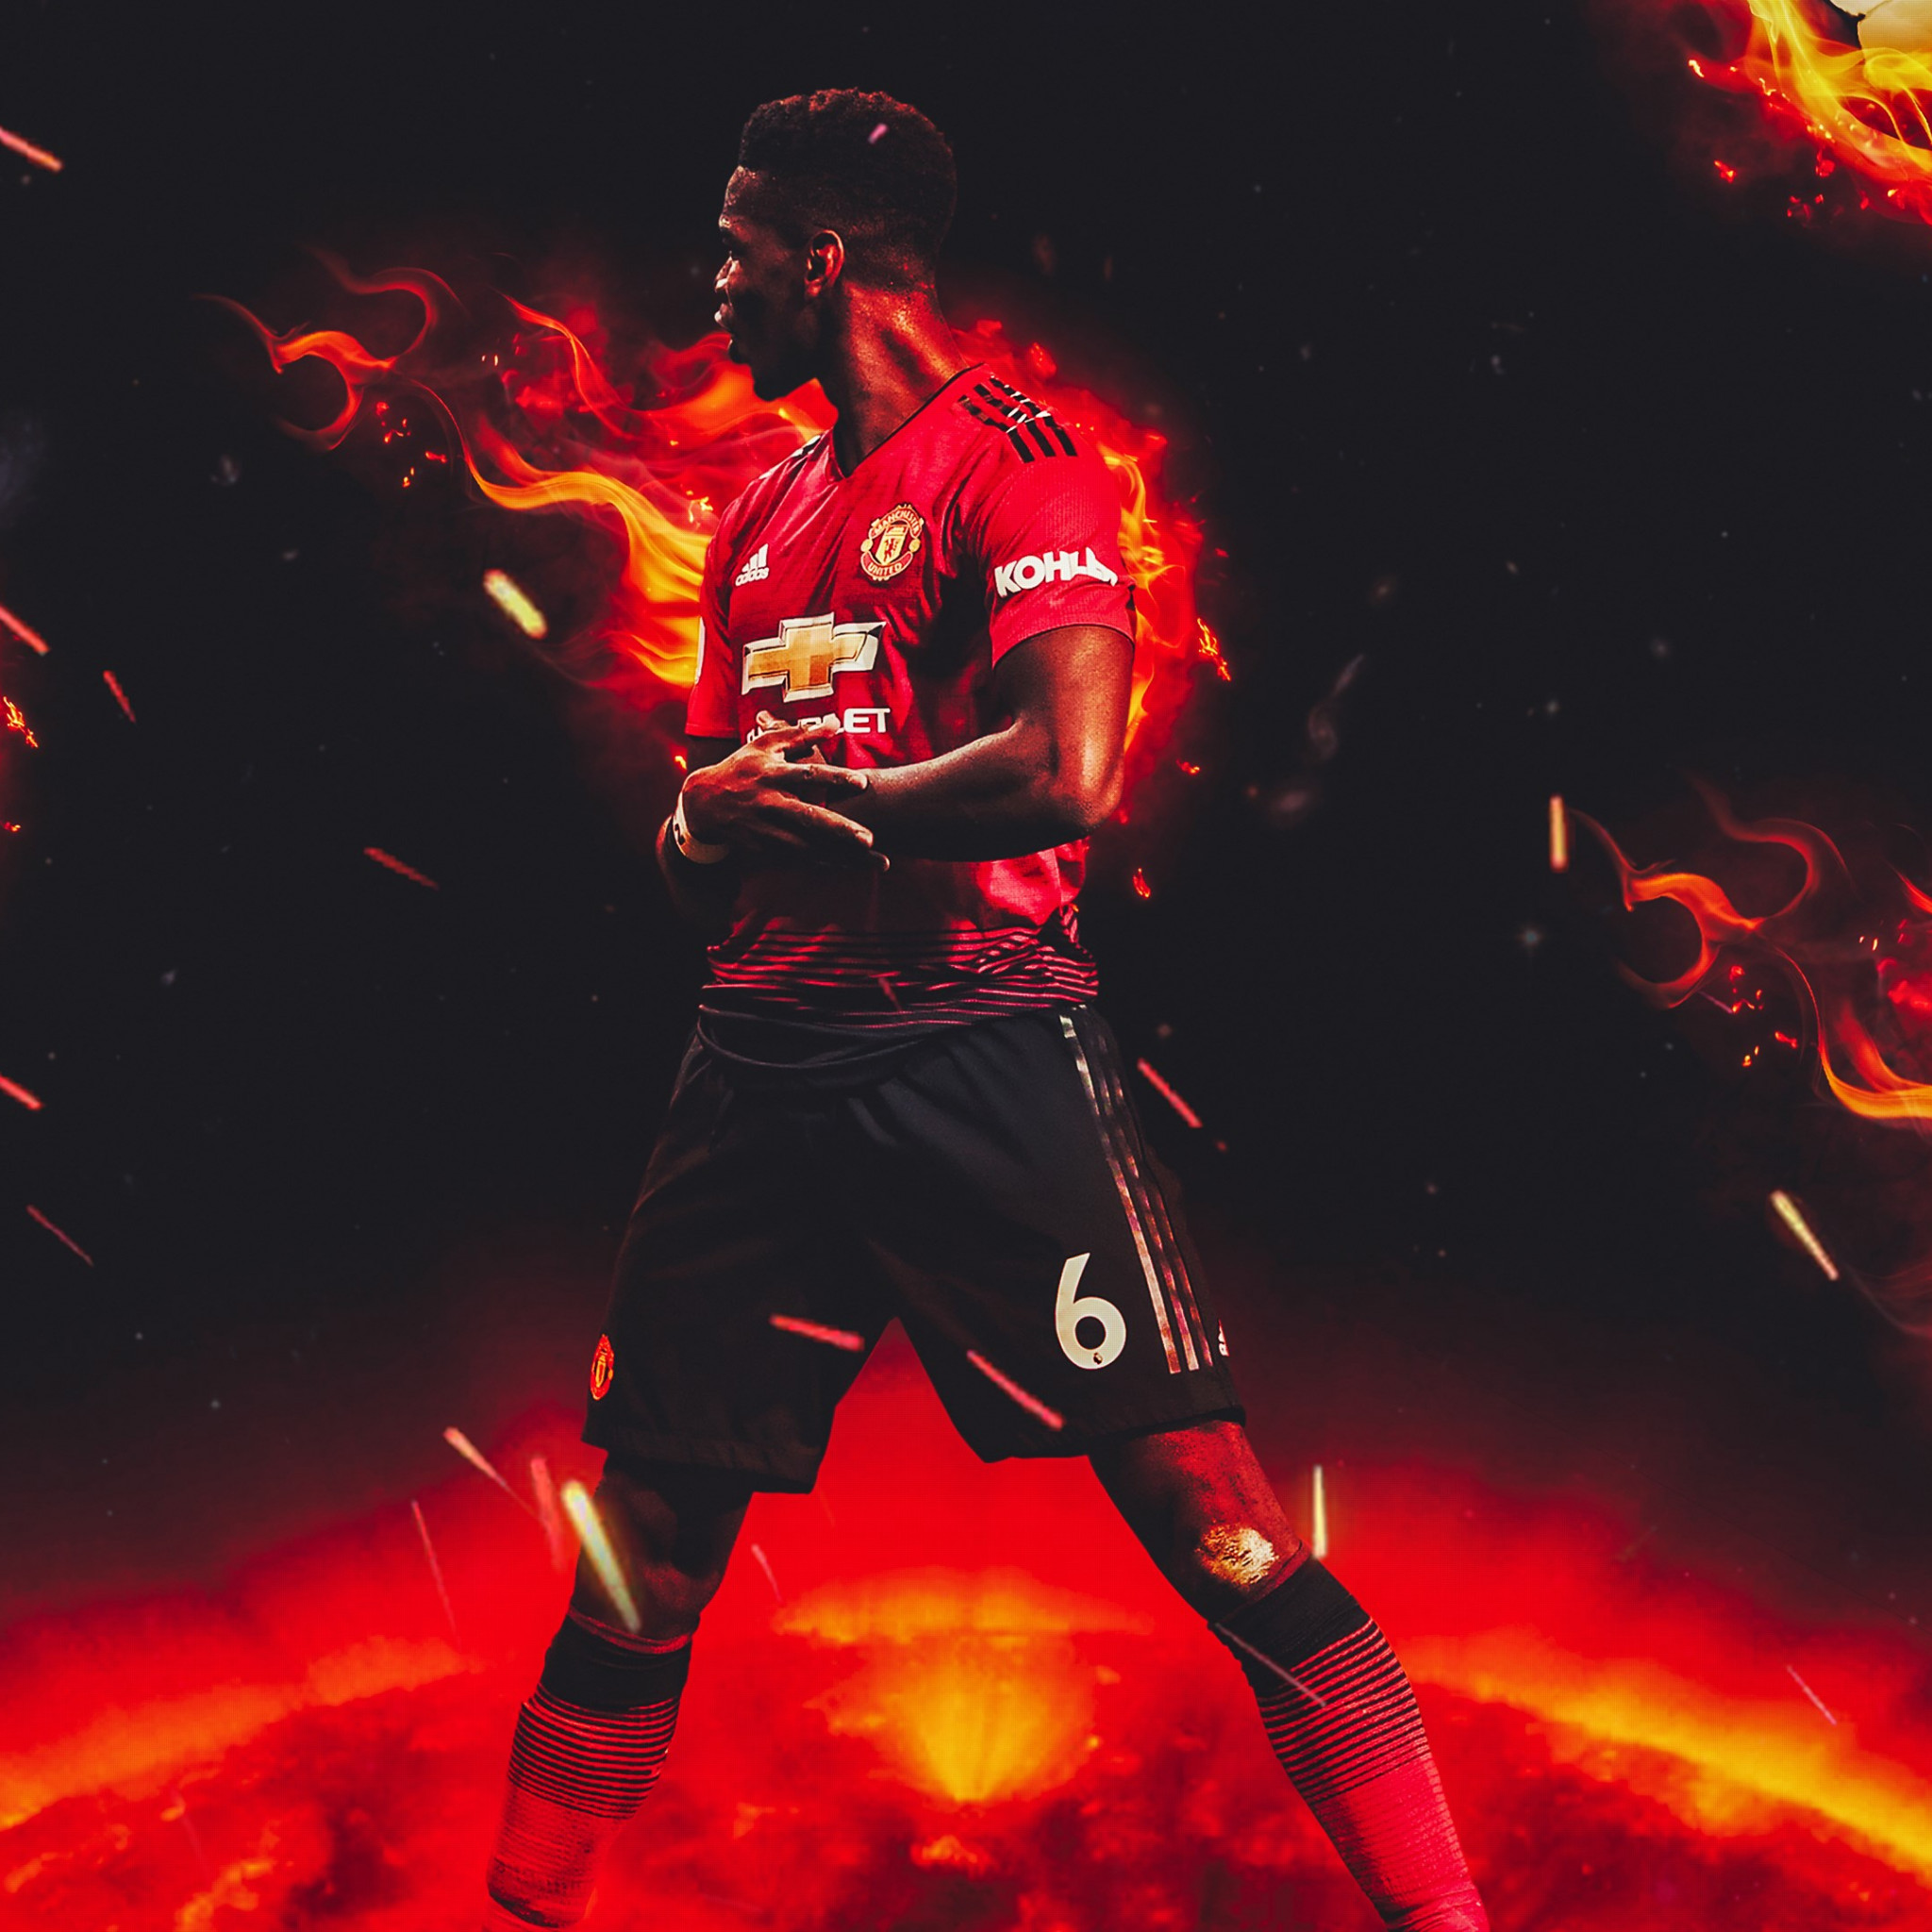 Paul Pogba for Manchester United wallpaper 2048x2048